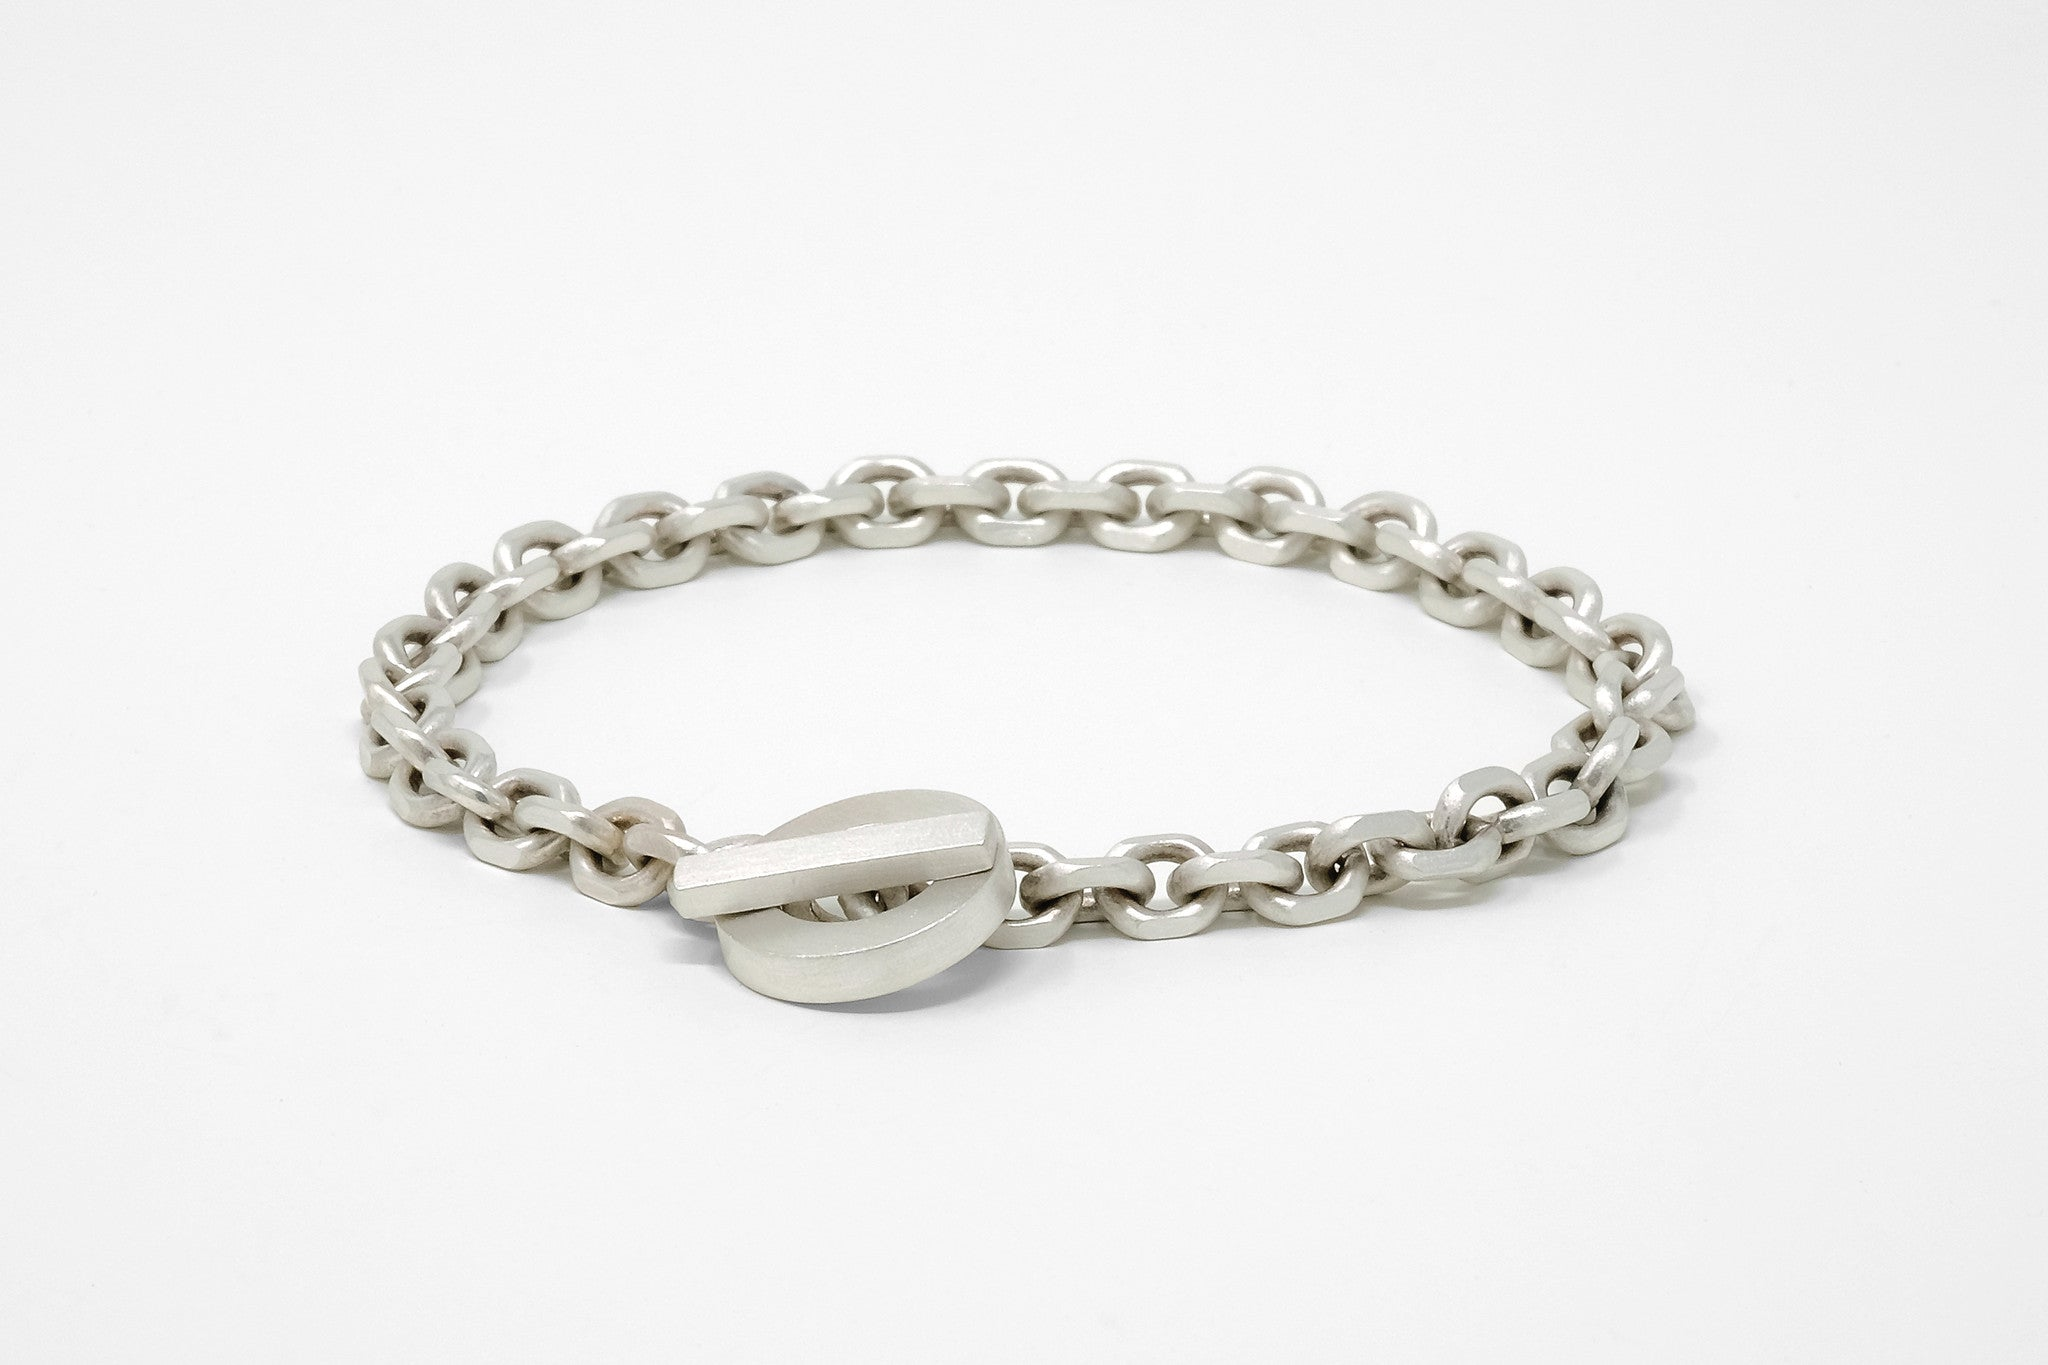 CS 6mm Chain Bracelet // Sterling Silver - Men's Chain Bracelet - MUJO NYC - 1